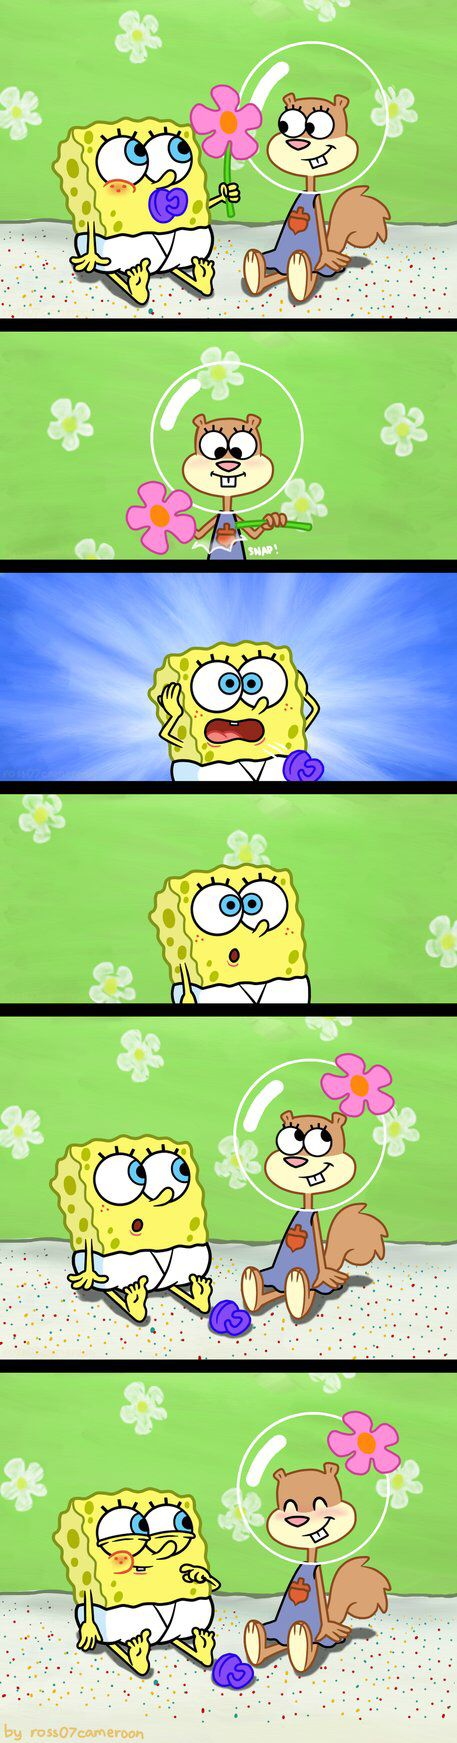 Random Flower Mini-Comic by Allenare on @DeviantArt http://www.amazon.com/SoundPie-Universal-Earphone-Microphone-Resistant/dp/B01AI26PYY/ref=sr_1_1?ie=UTF8&keywords=apple+earbuds